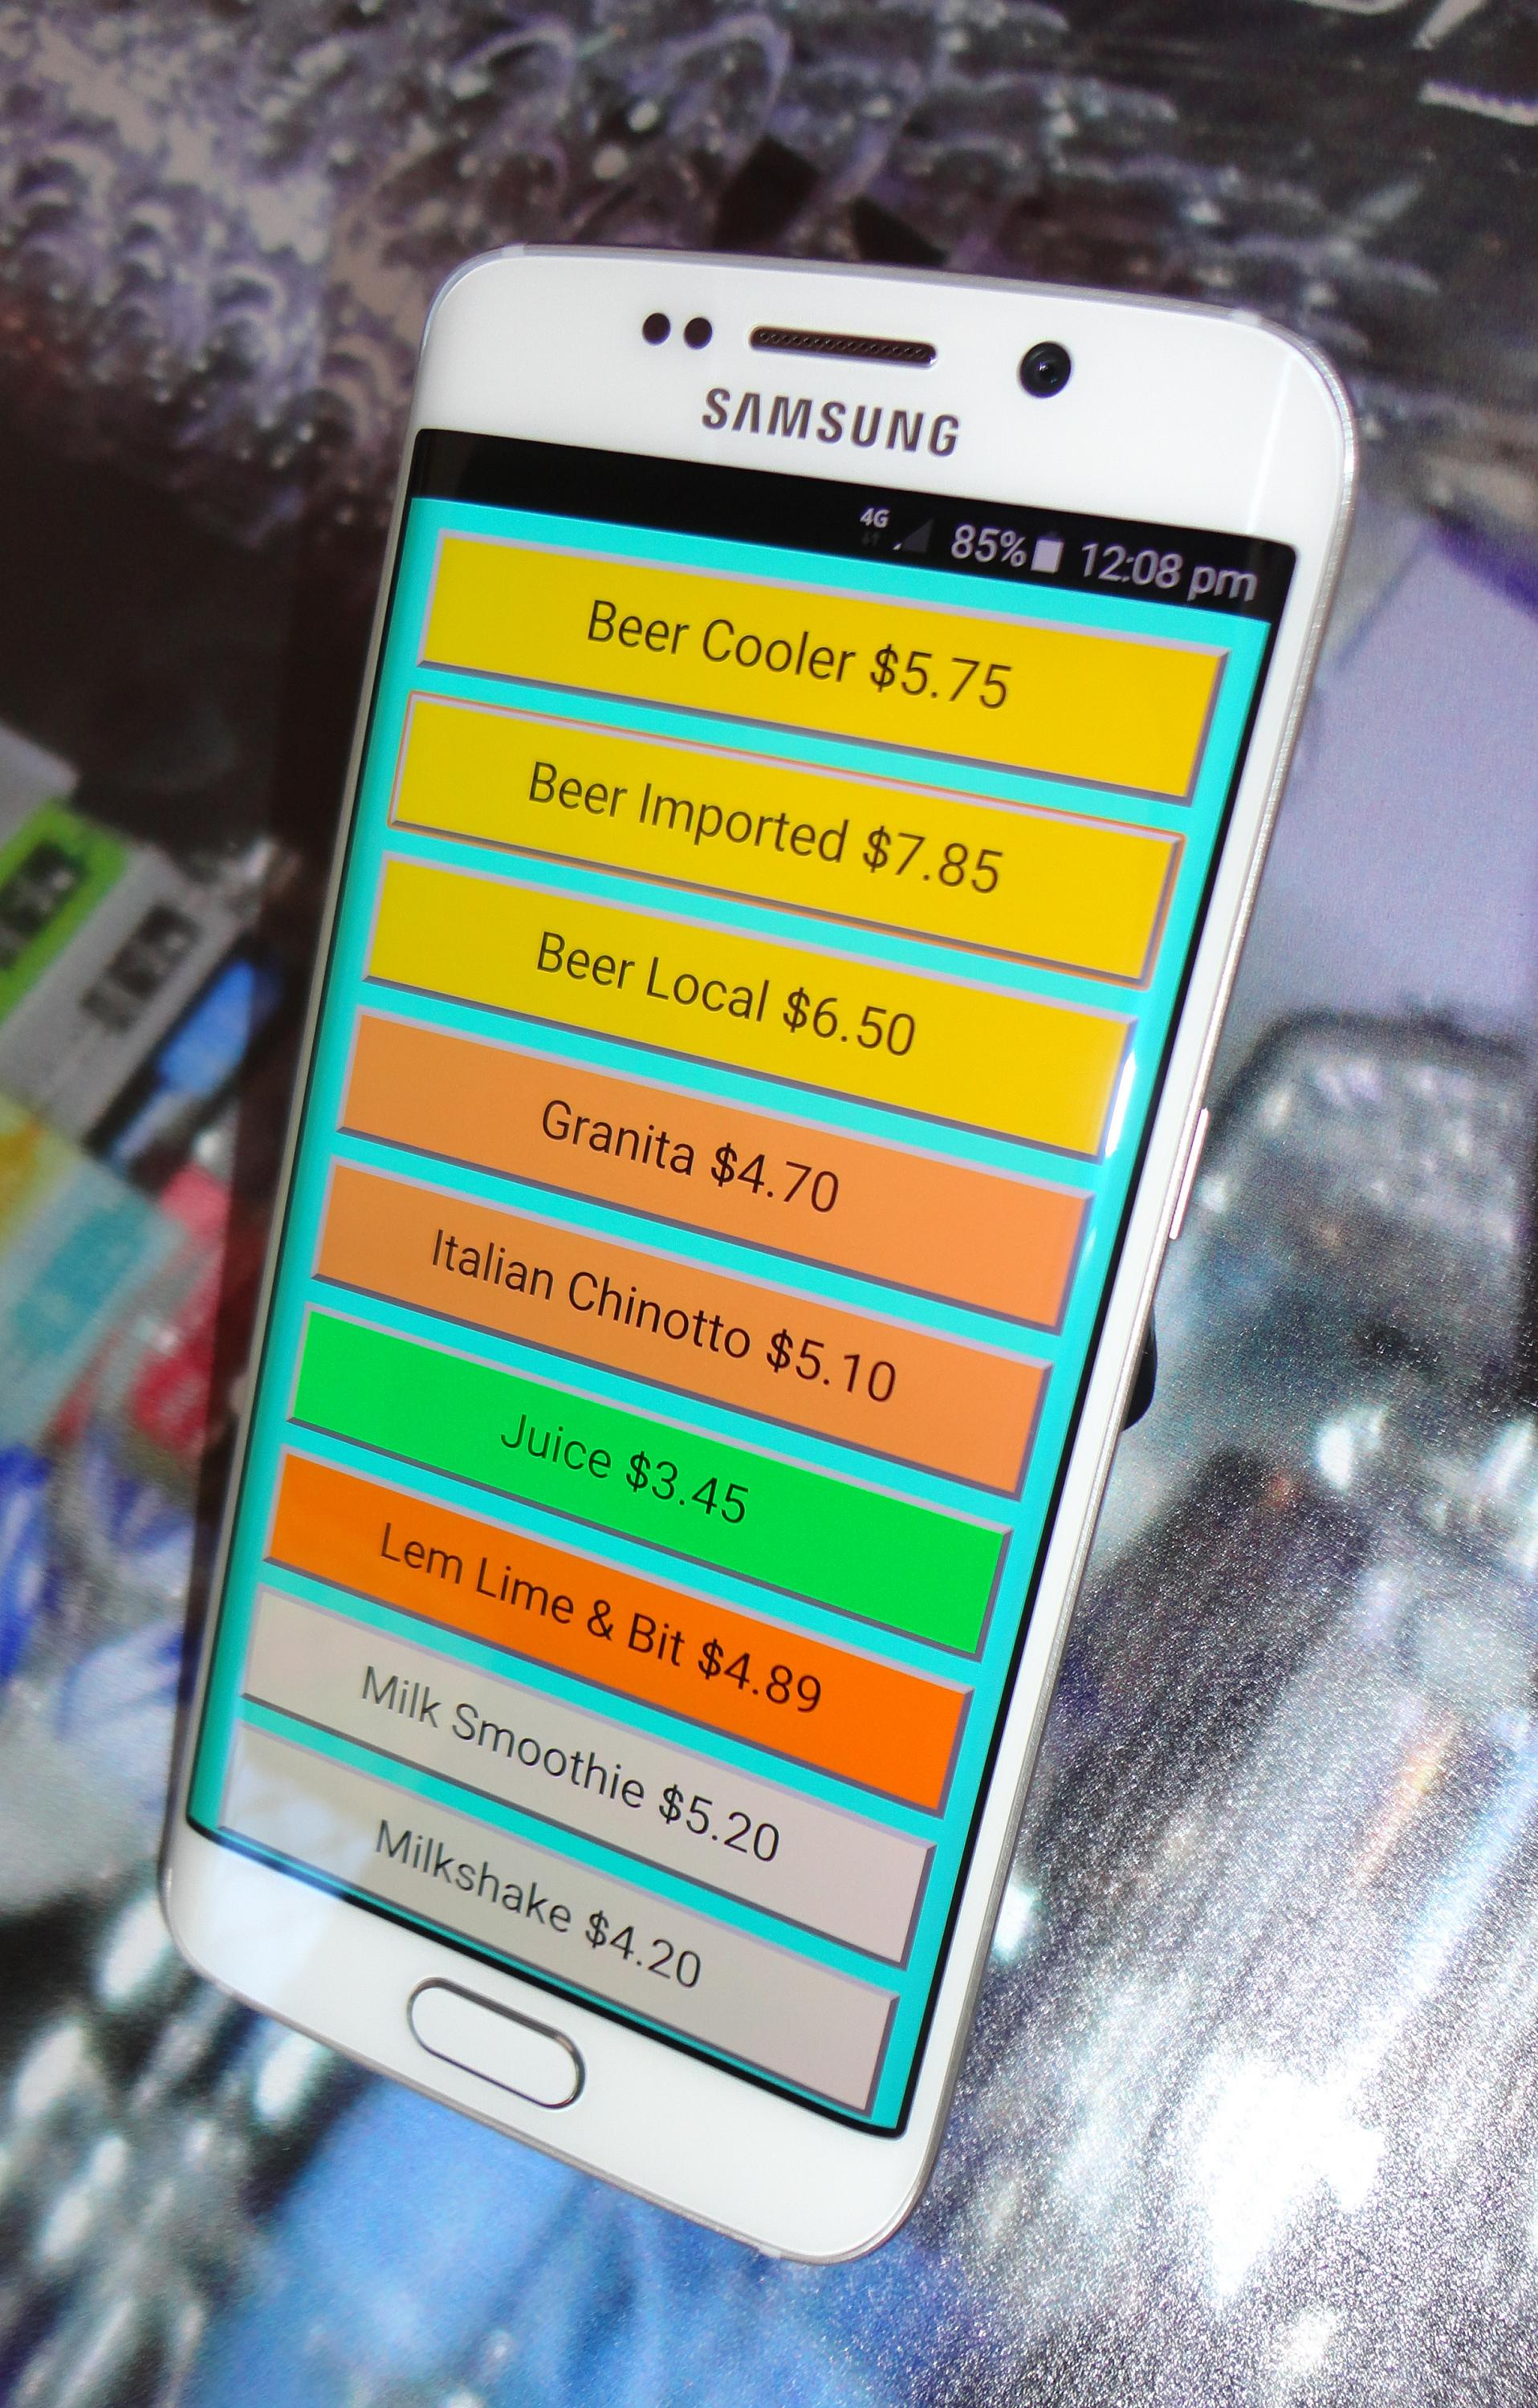 Restaurant / Cafe - POS & Kitchen Display System for Android - APK